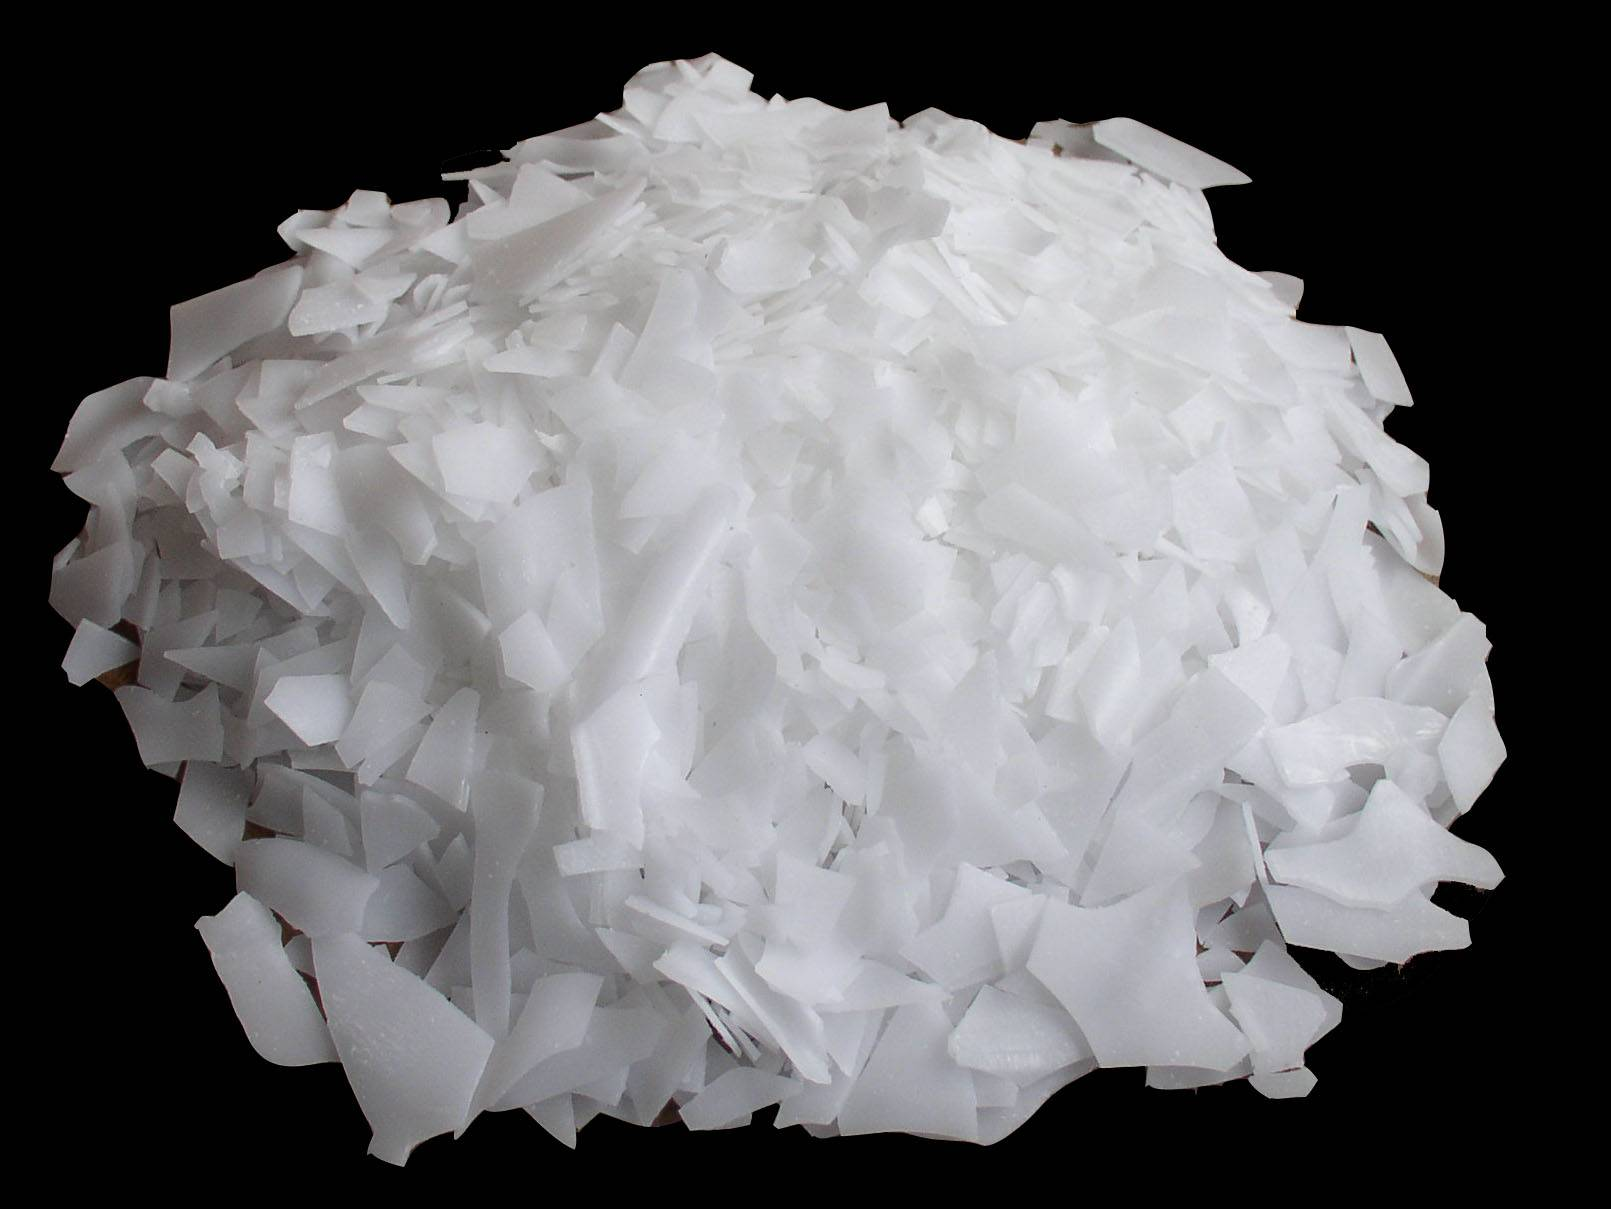 Polyethylene Wax for LDPE Compound